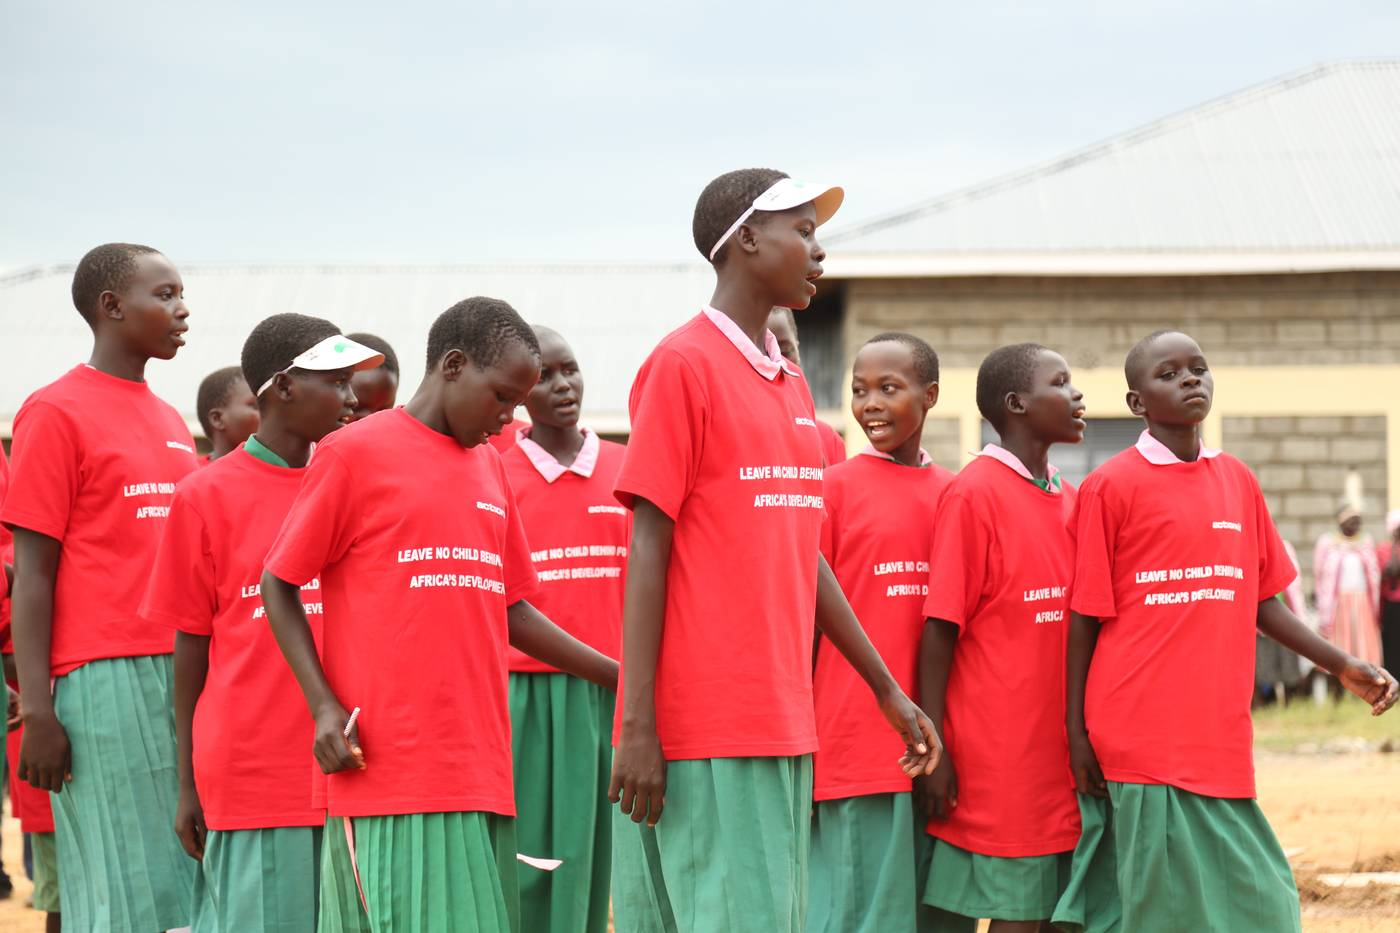 Fear and prestige pushing Kenyan girls into FGM - and out of school